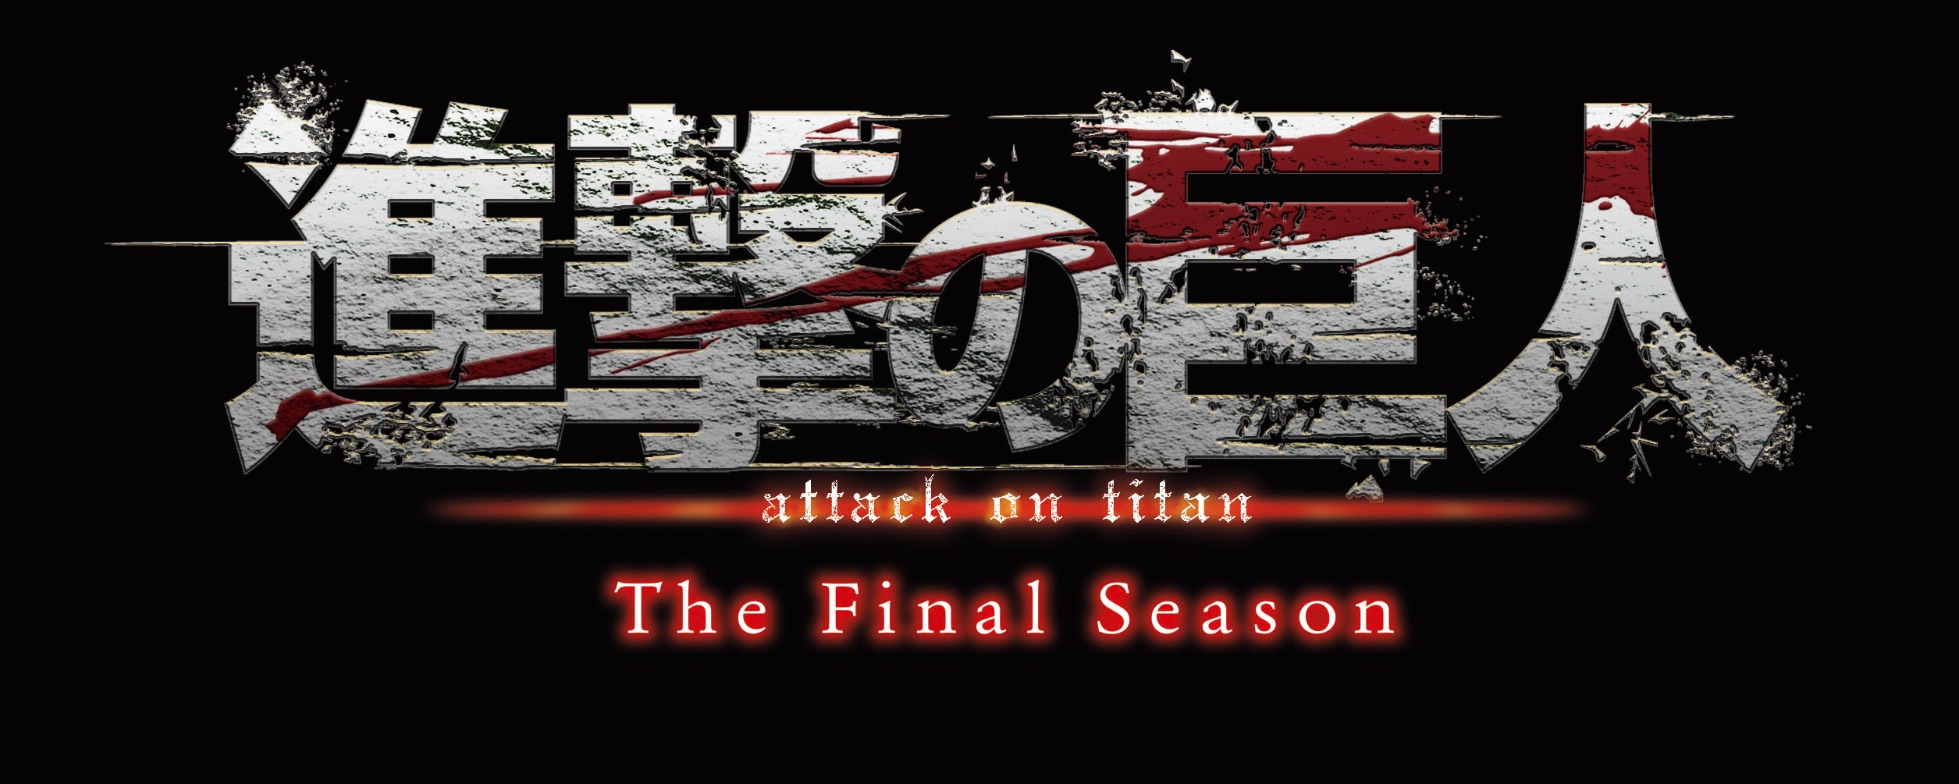 %e9%80%b2%e6%92%83%e3%81%ae%e5%b7%a8%e4%ba%ba-the-final-season-%e9%80%b2%e6%93%8a%e7%9a%84%e5%b7%a8%e4%ba%ba-attack-on-titan-2